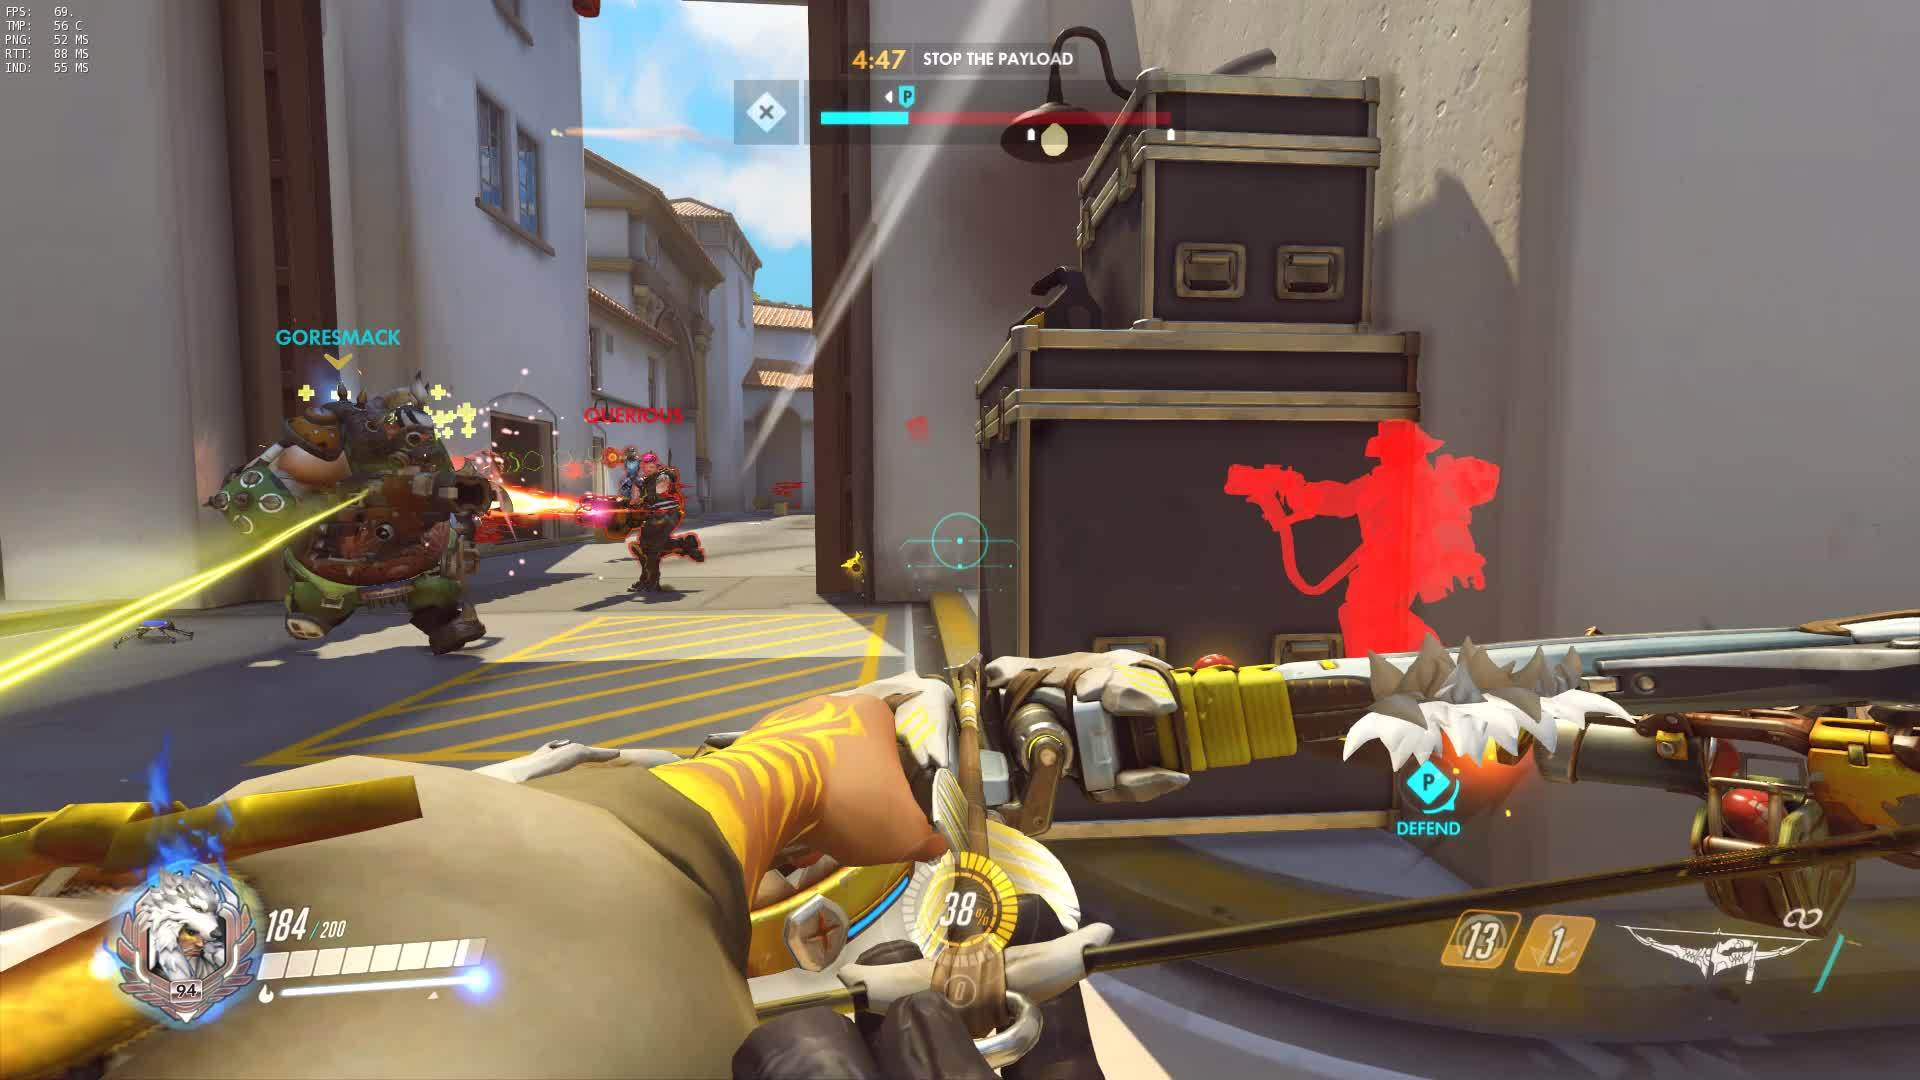 Overwatch Hanzo Funny Gifs Search | Search & Share on Homdor